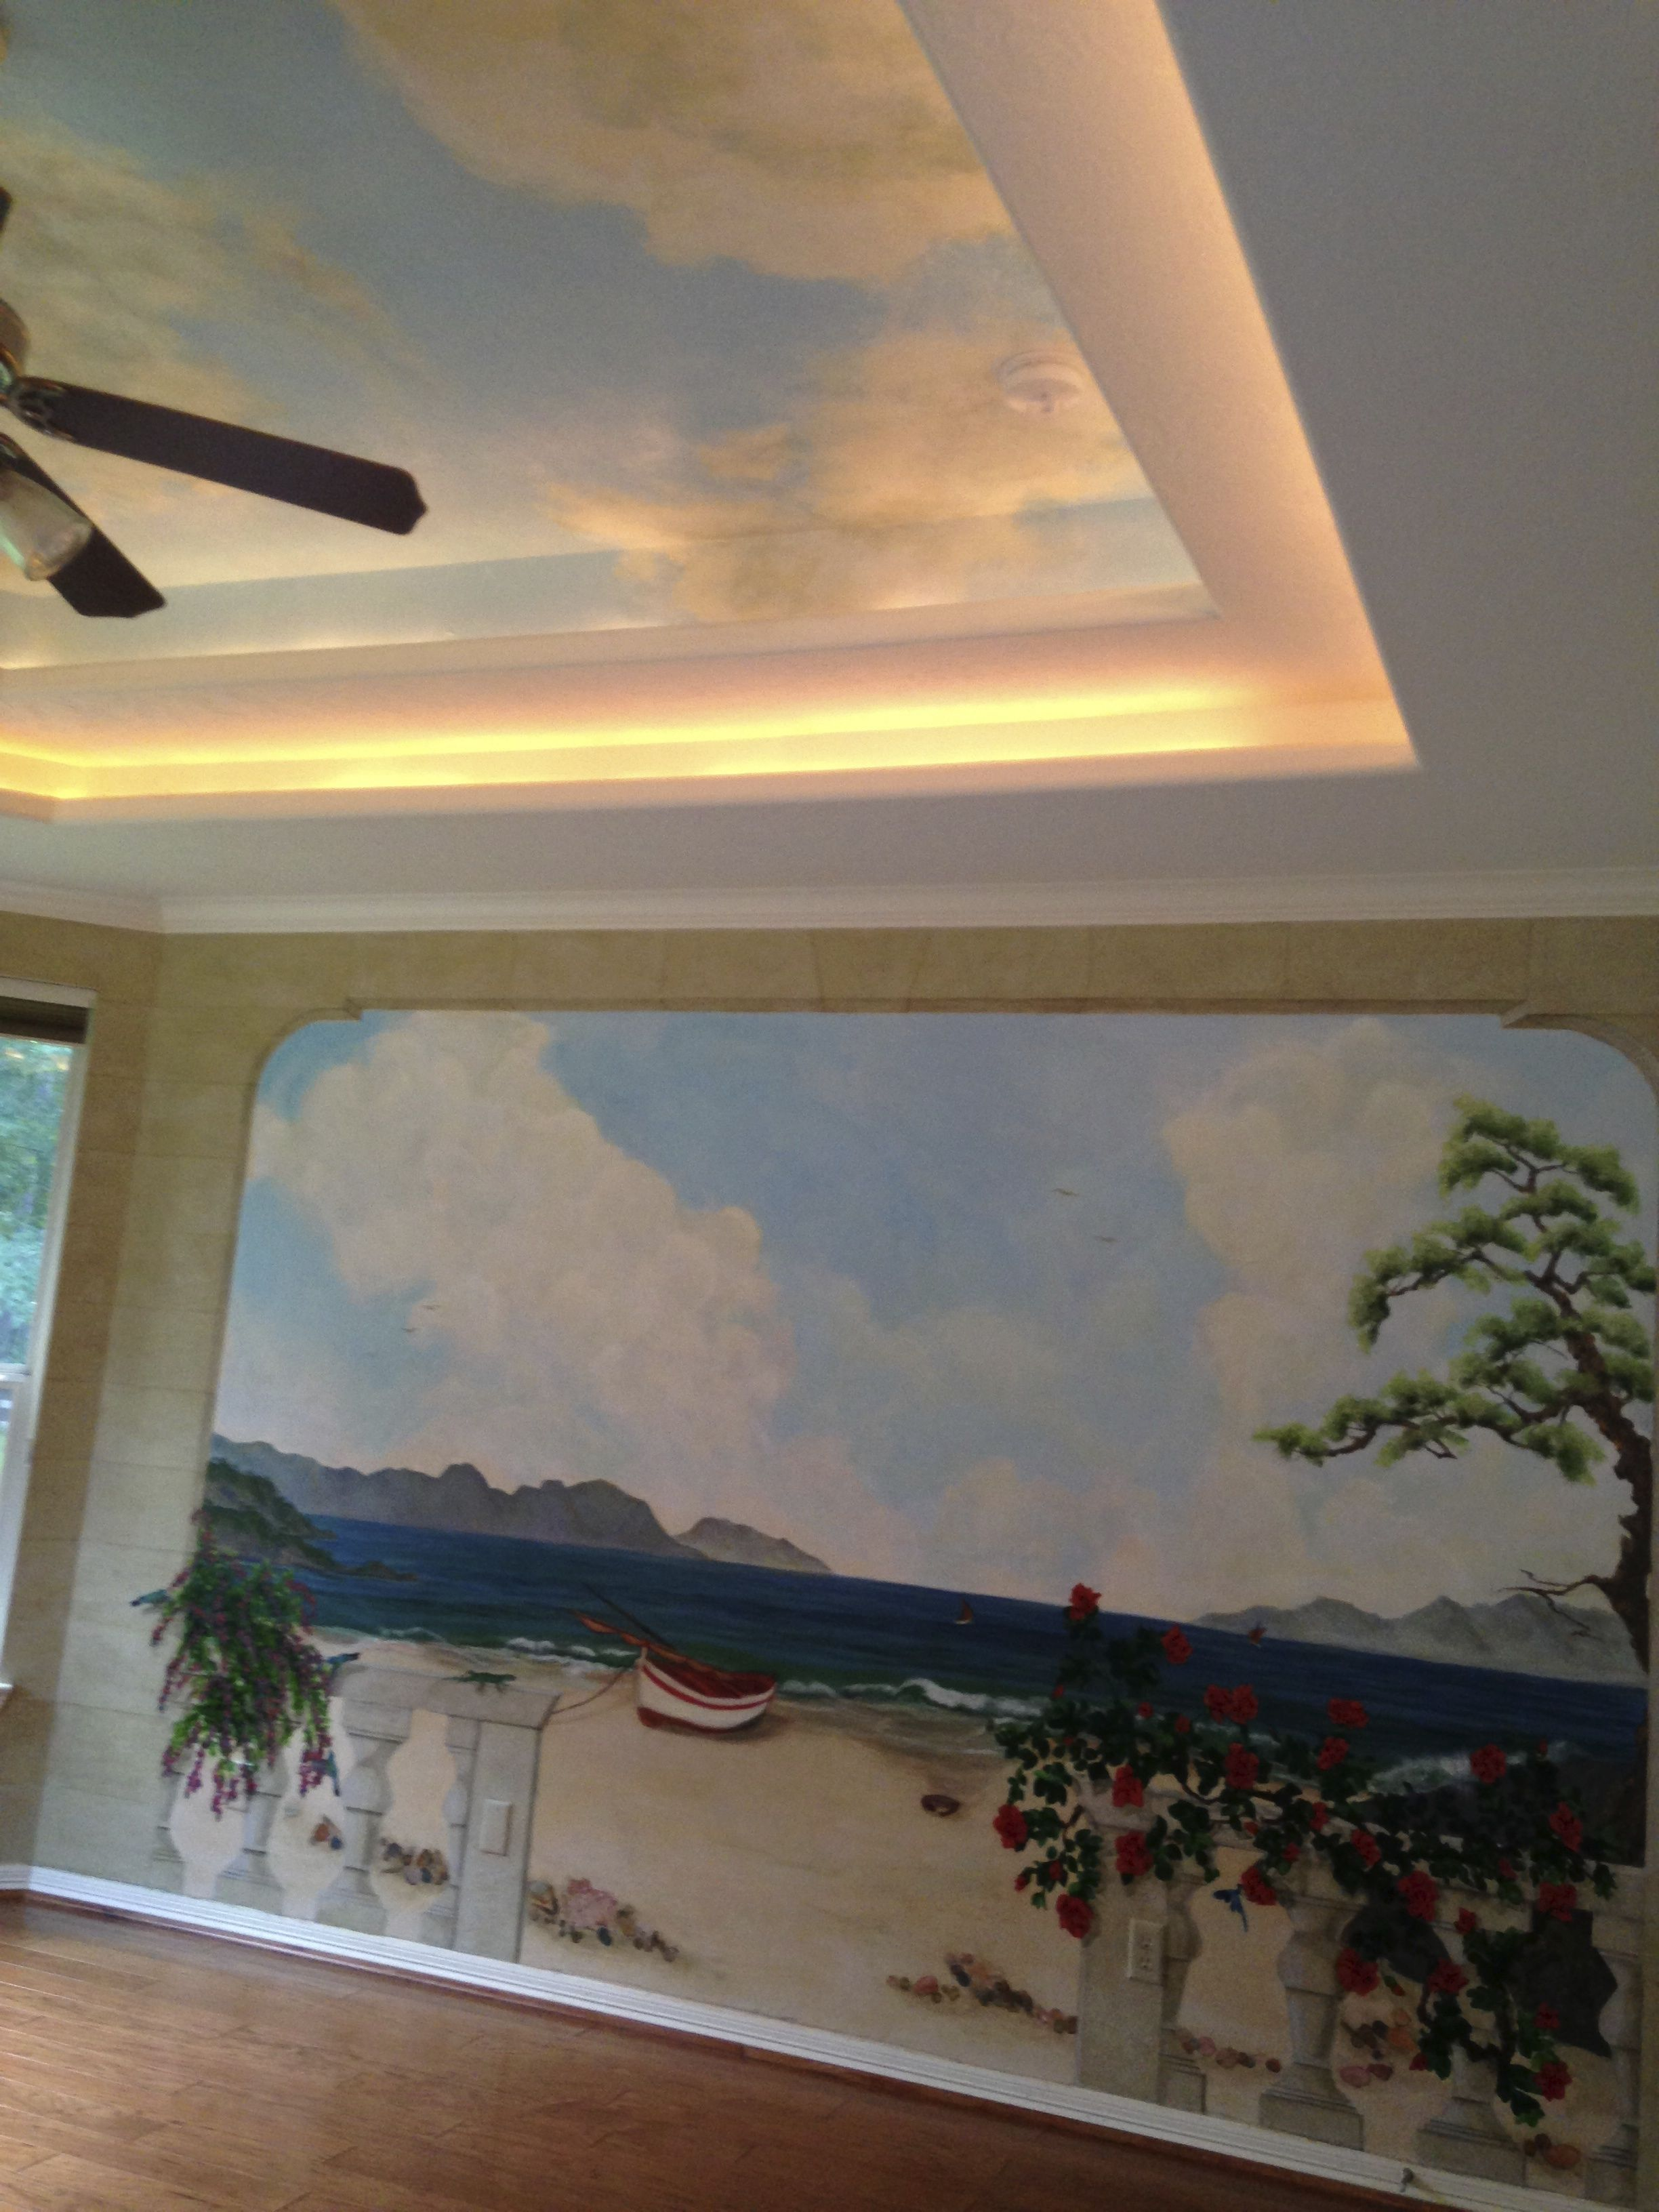 ceilings with mural art - photo #38